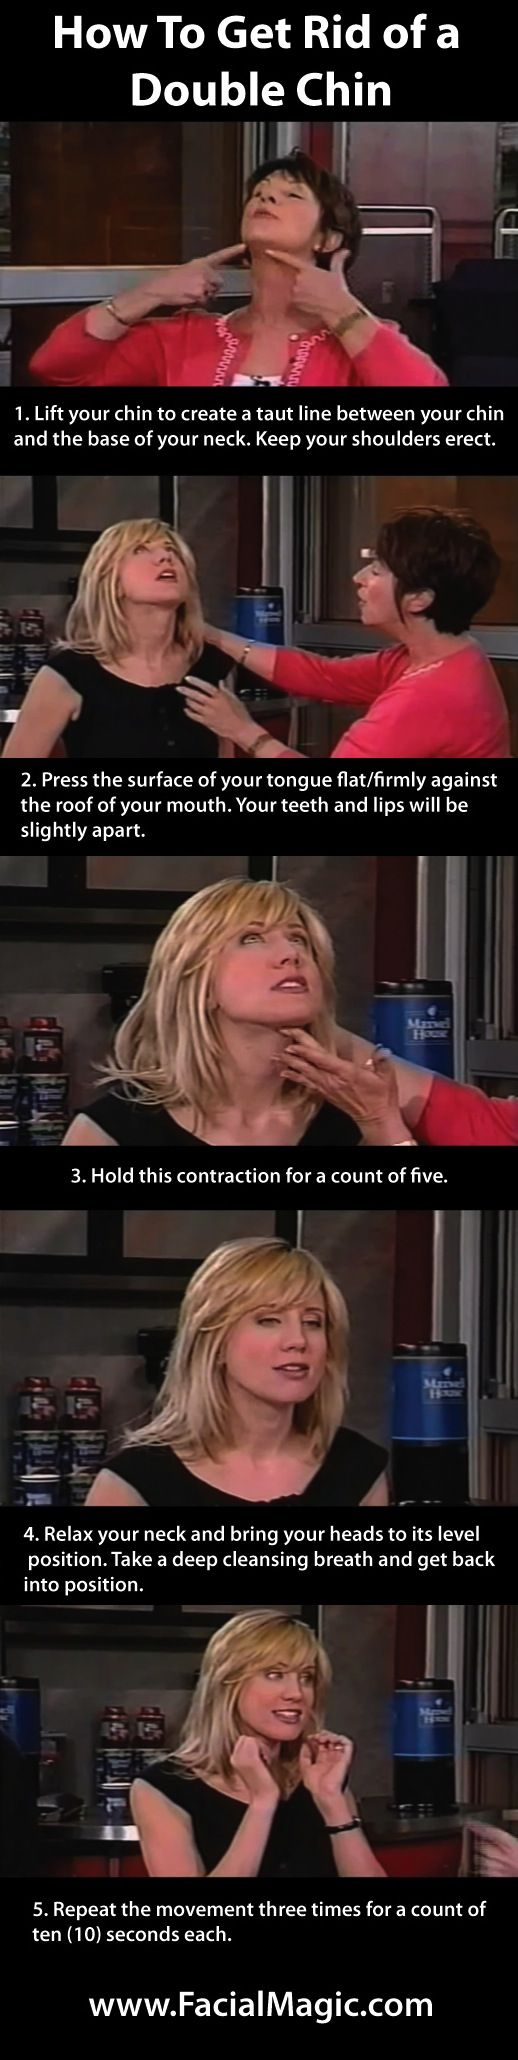 How To Get Rid of a Double Chin Doing Facial Exercise www.FacialMagic.com Click to view video: http://www.youtube.com/watch?v=LMo85HUsXA4 #facialexercise #facialmagic